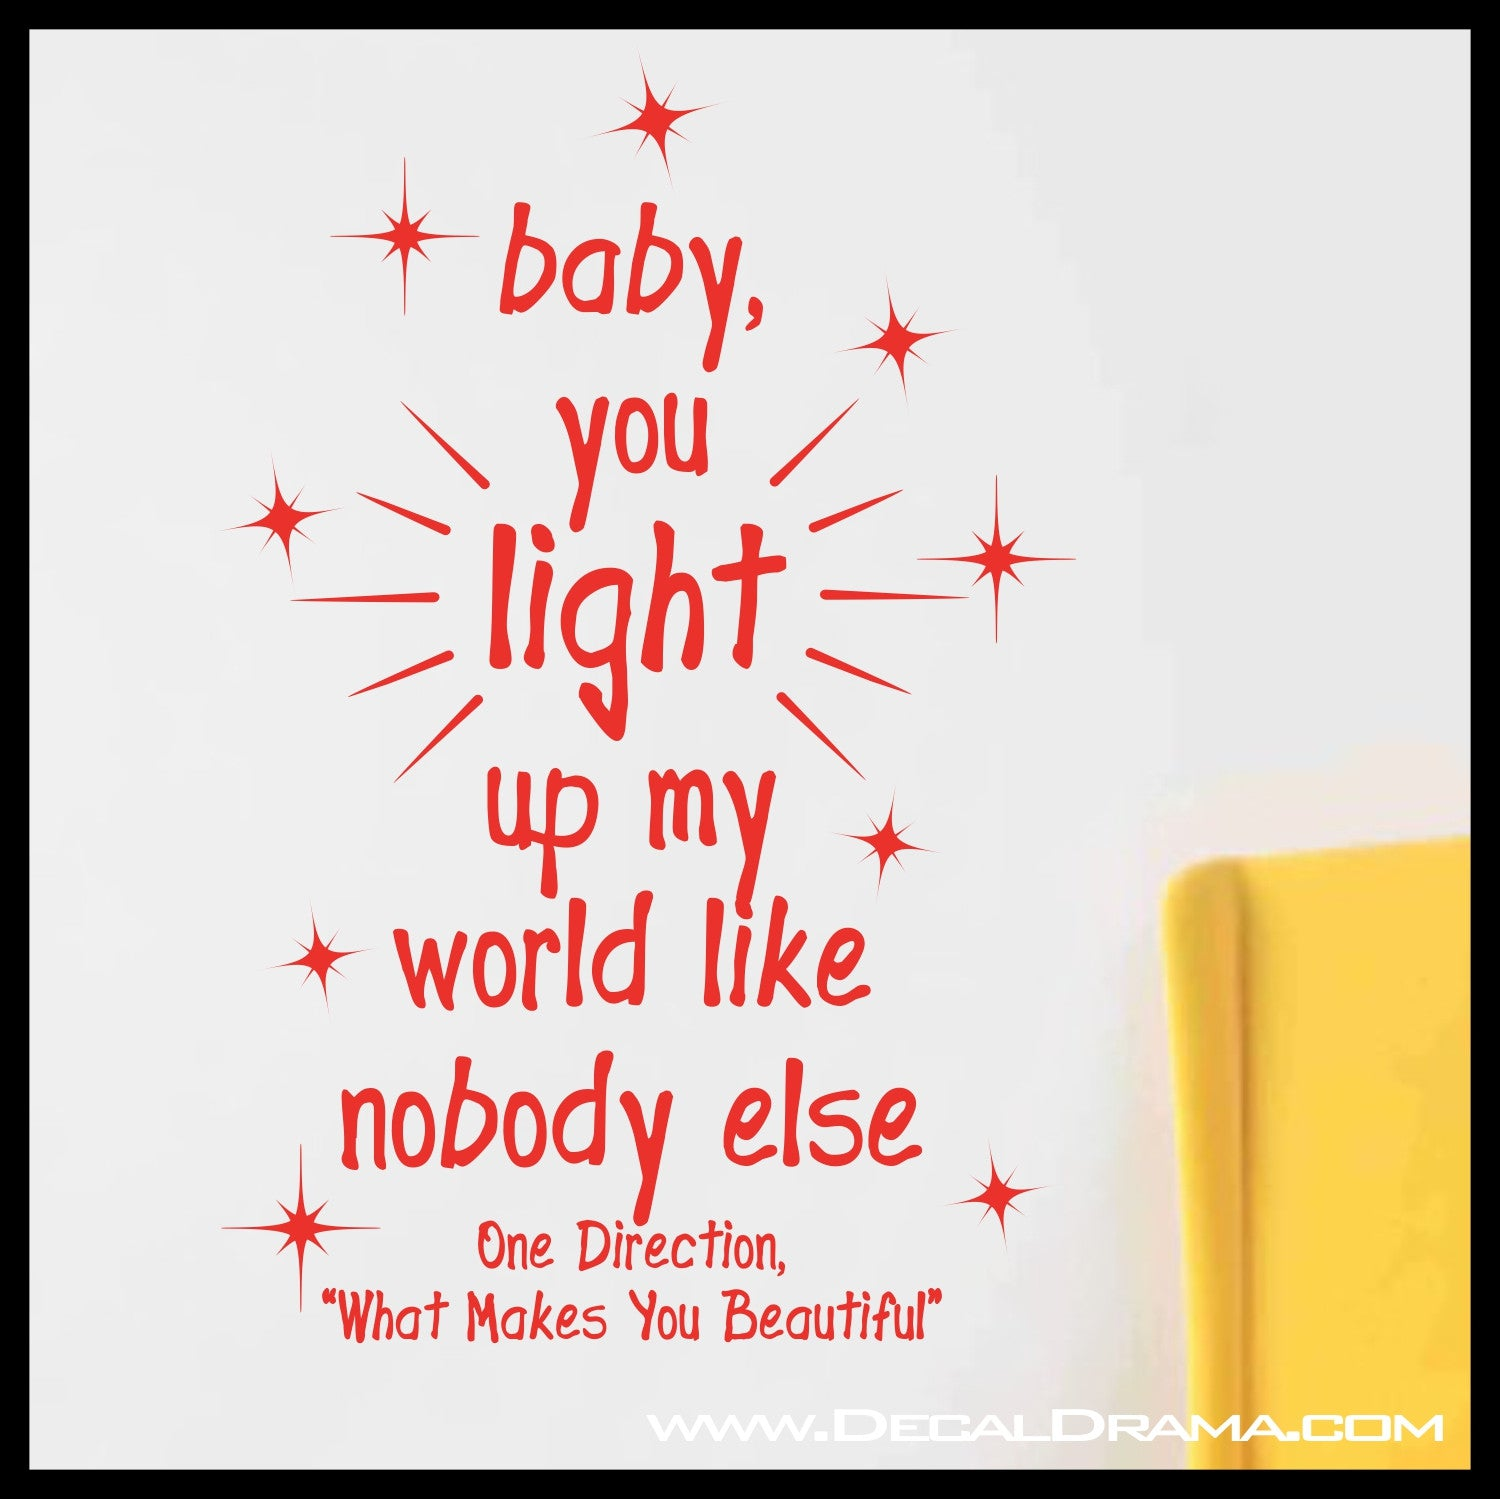 Baby You Light Up My World Like Nobody Else, VERTICAL One Direction What Makes You Beautiful lyrics Vinyl Wall Decal